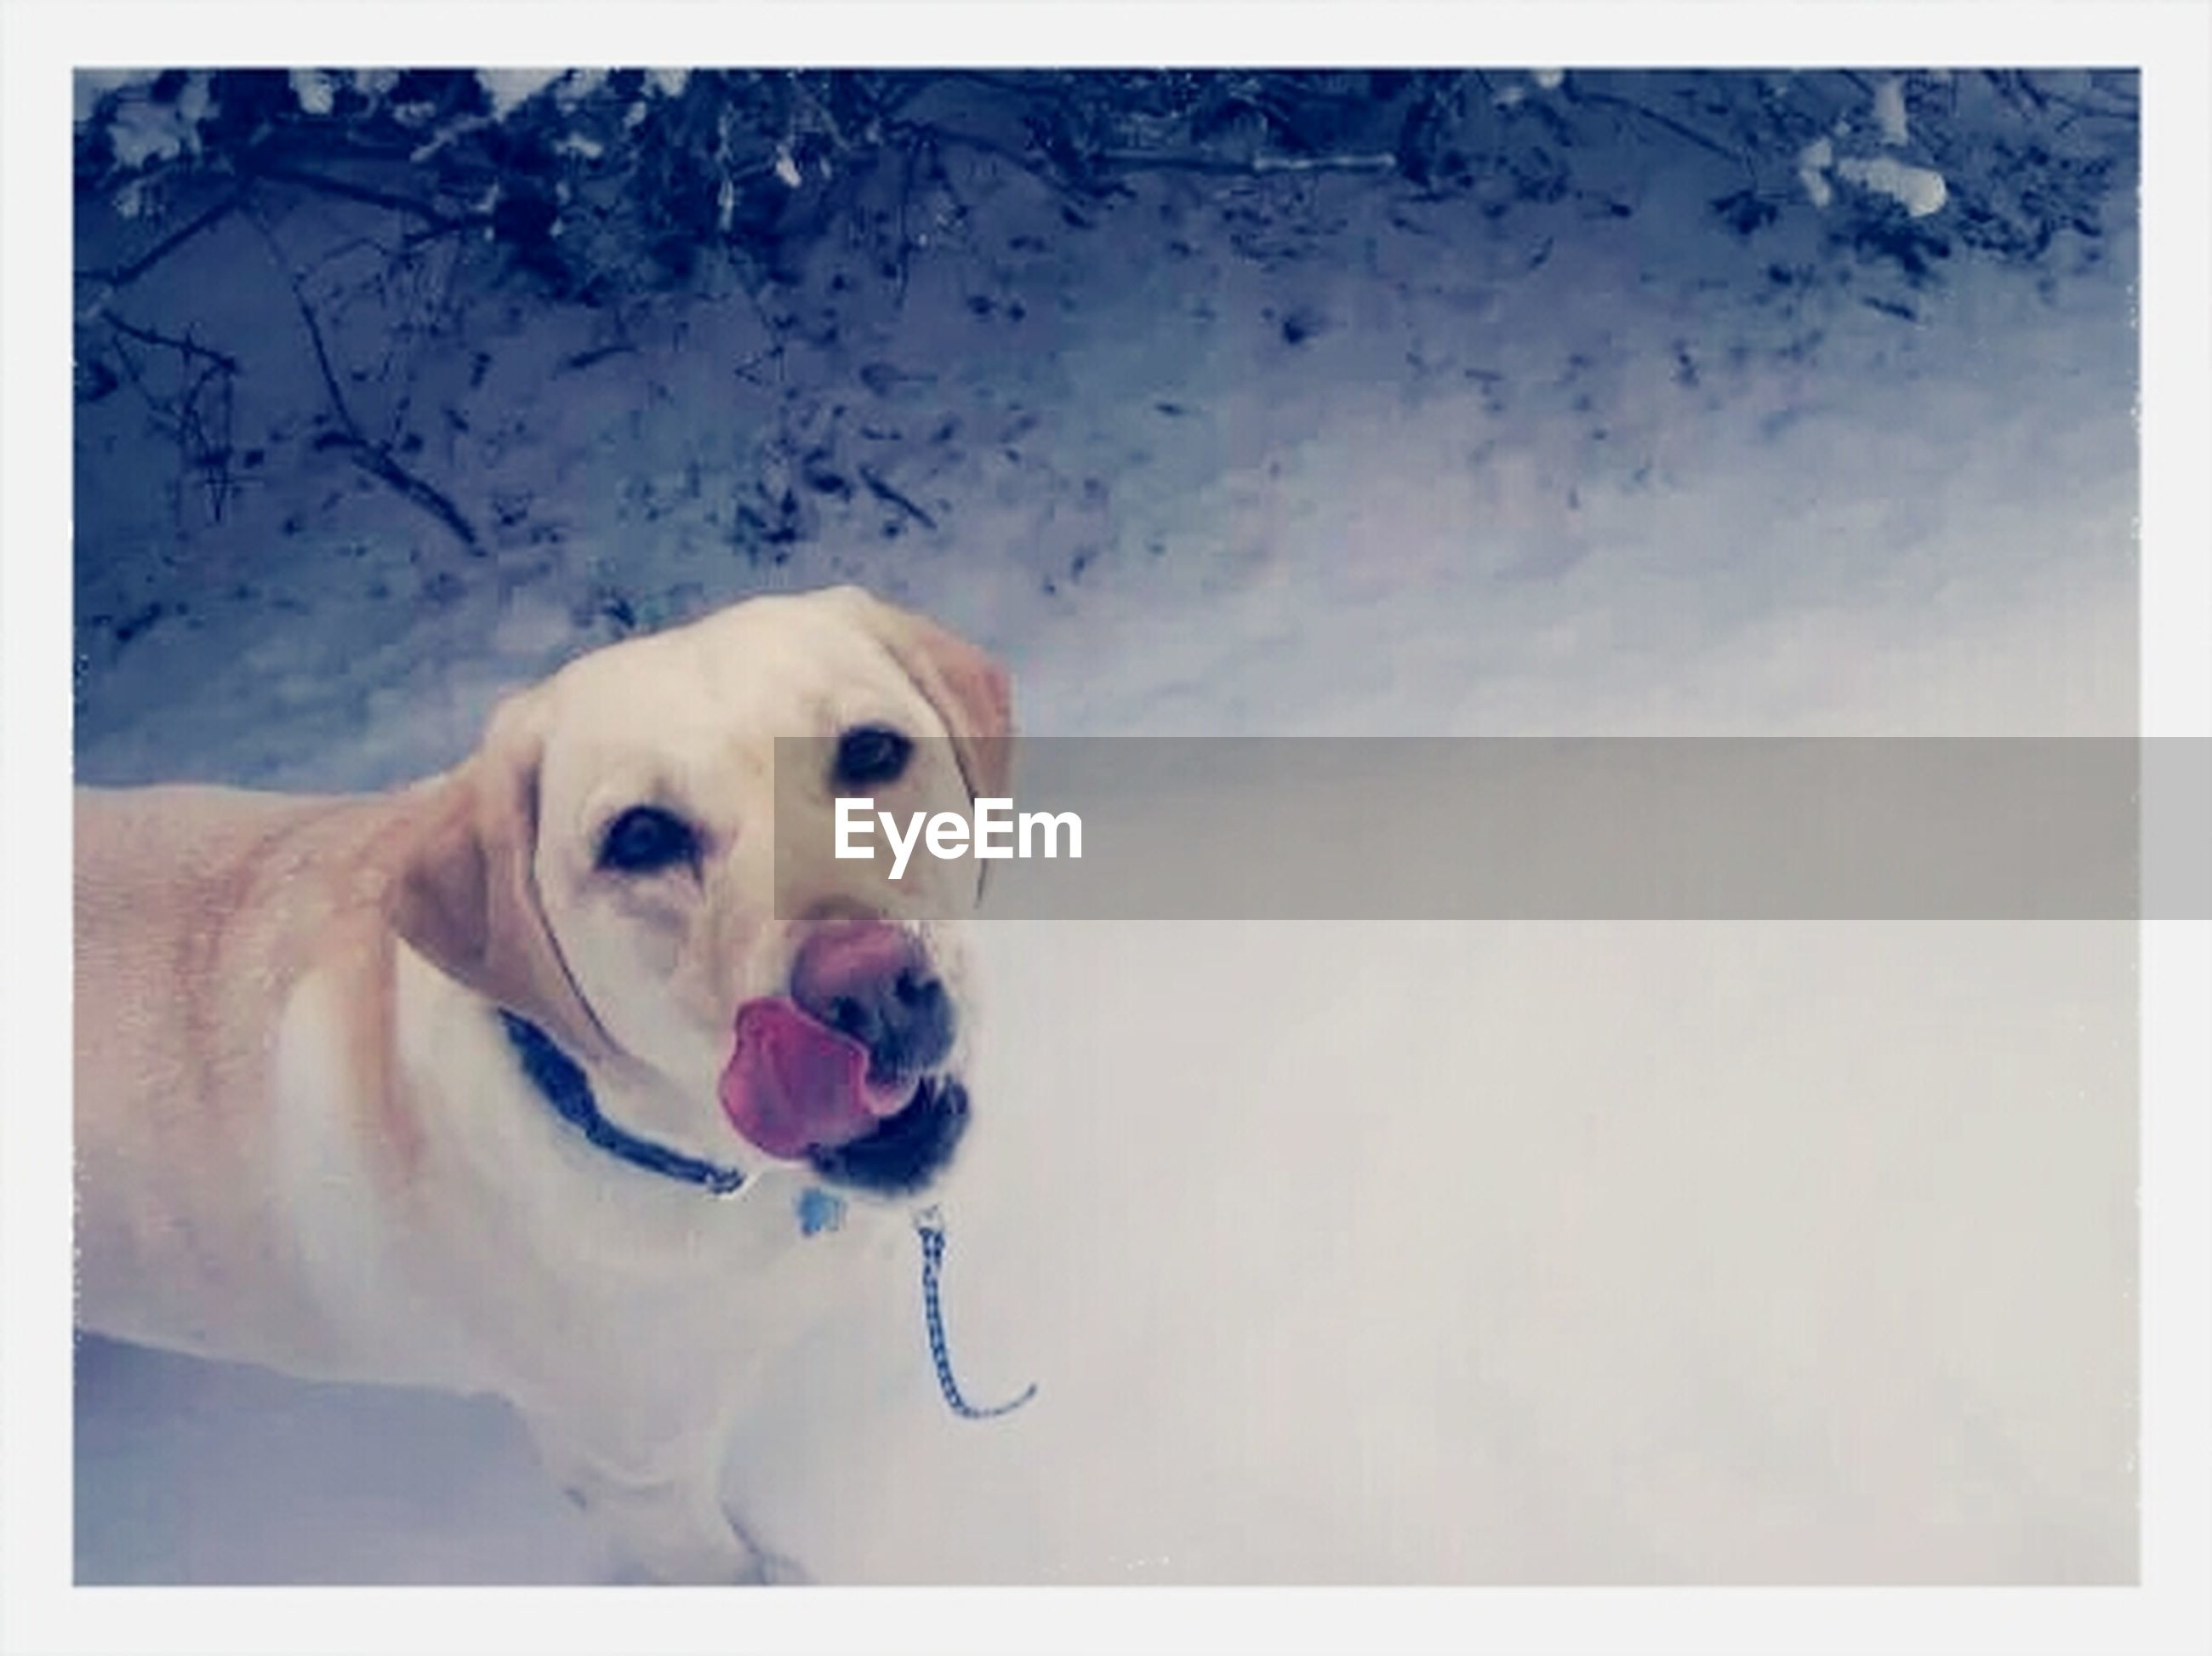 dog, pets, domestic animals, animal themes, one animal, mammal, transfer print, looking at camera, portrait, auto post production filter, white color, pet collar, full length, zoology, animal head, front view, mouth open, snow, cute, winter